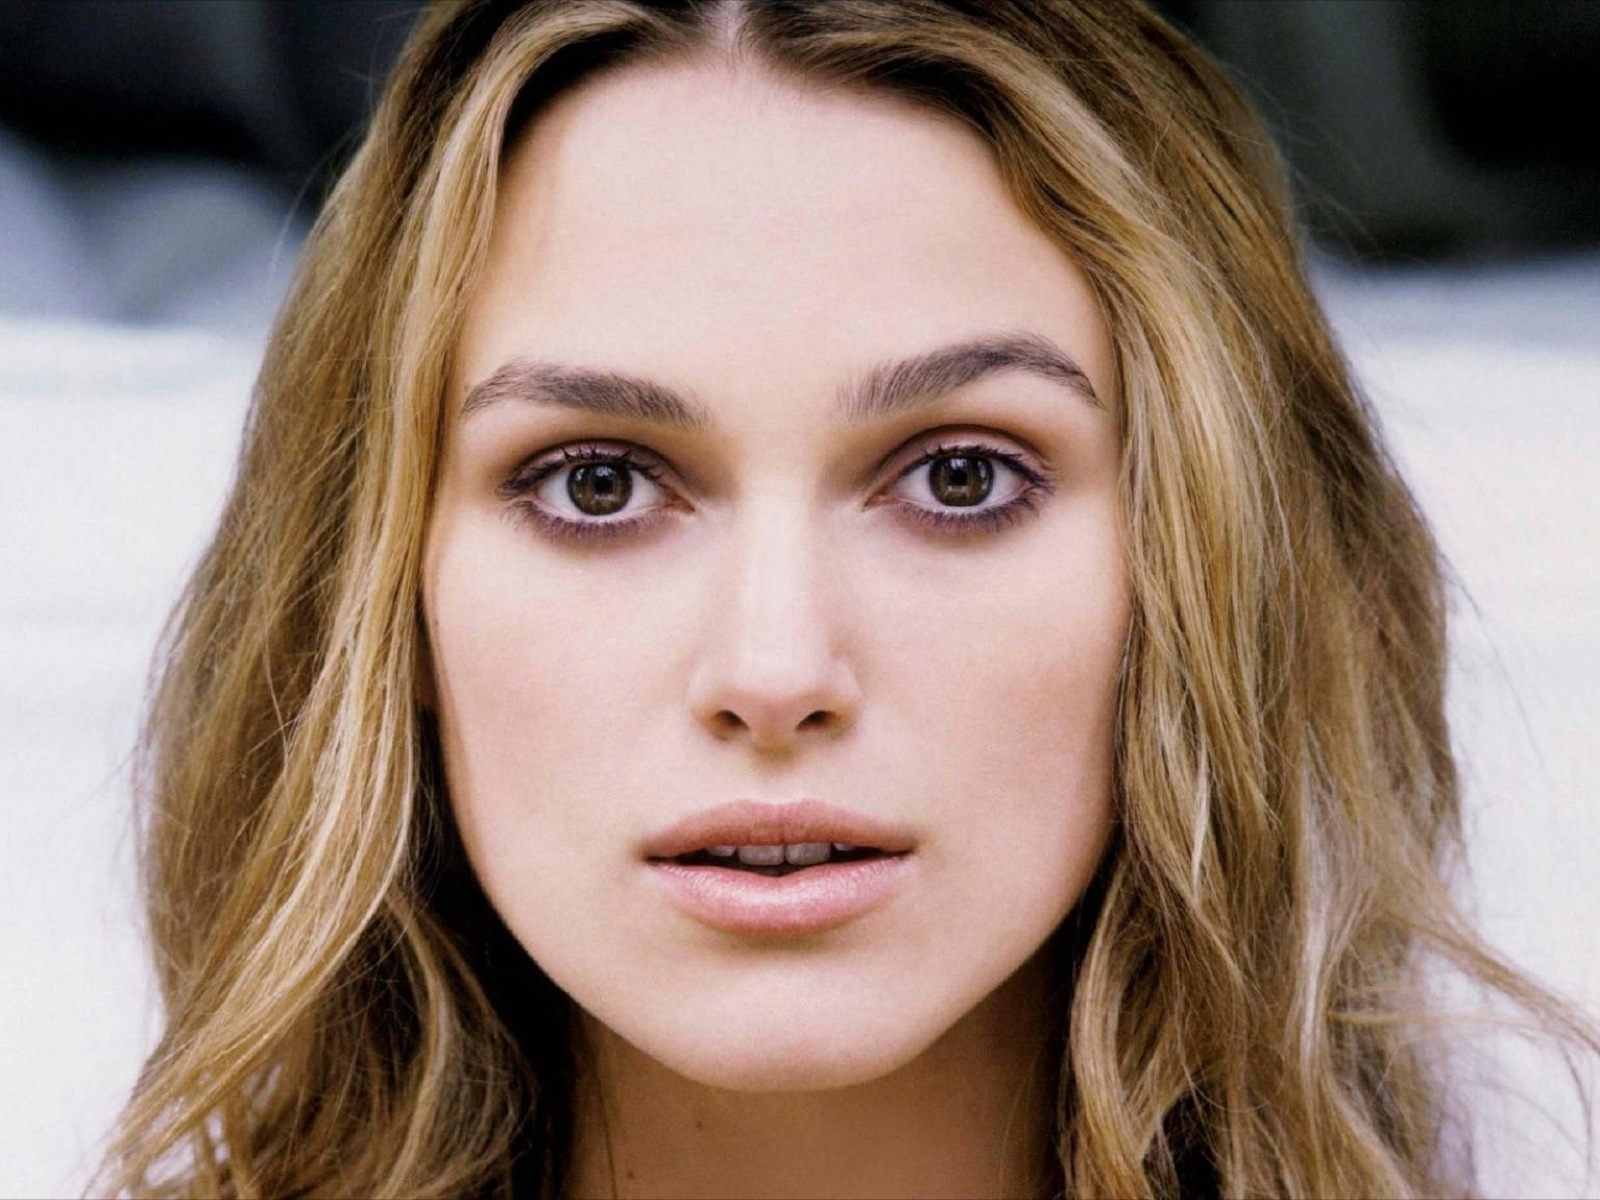 Keira Knightley Keira Knightley Images-2982